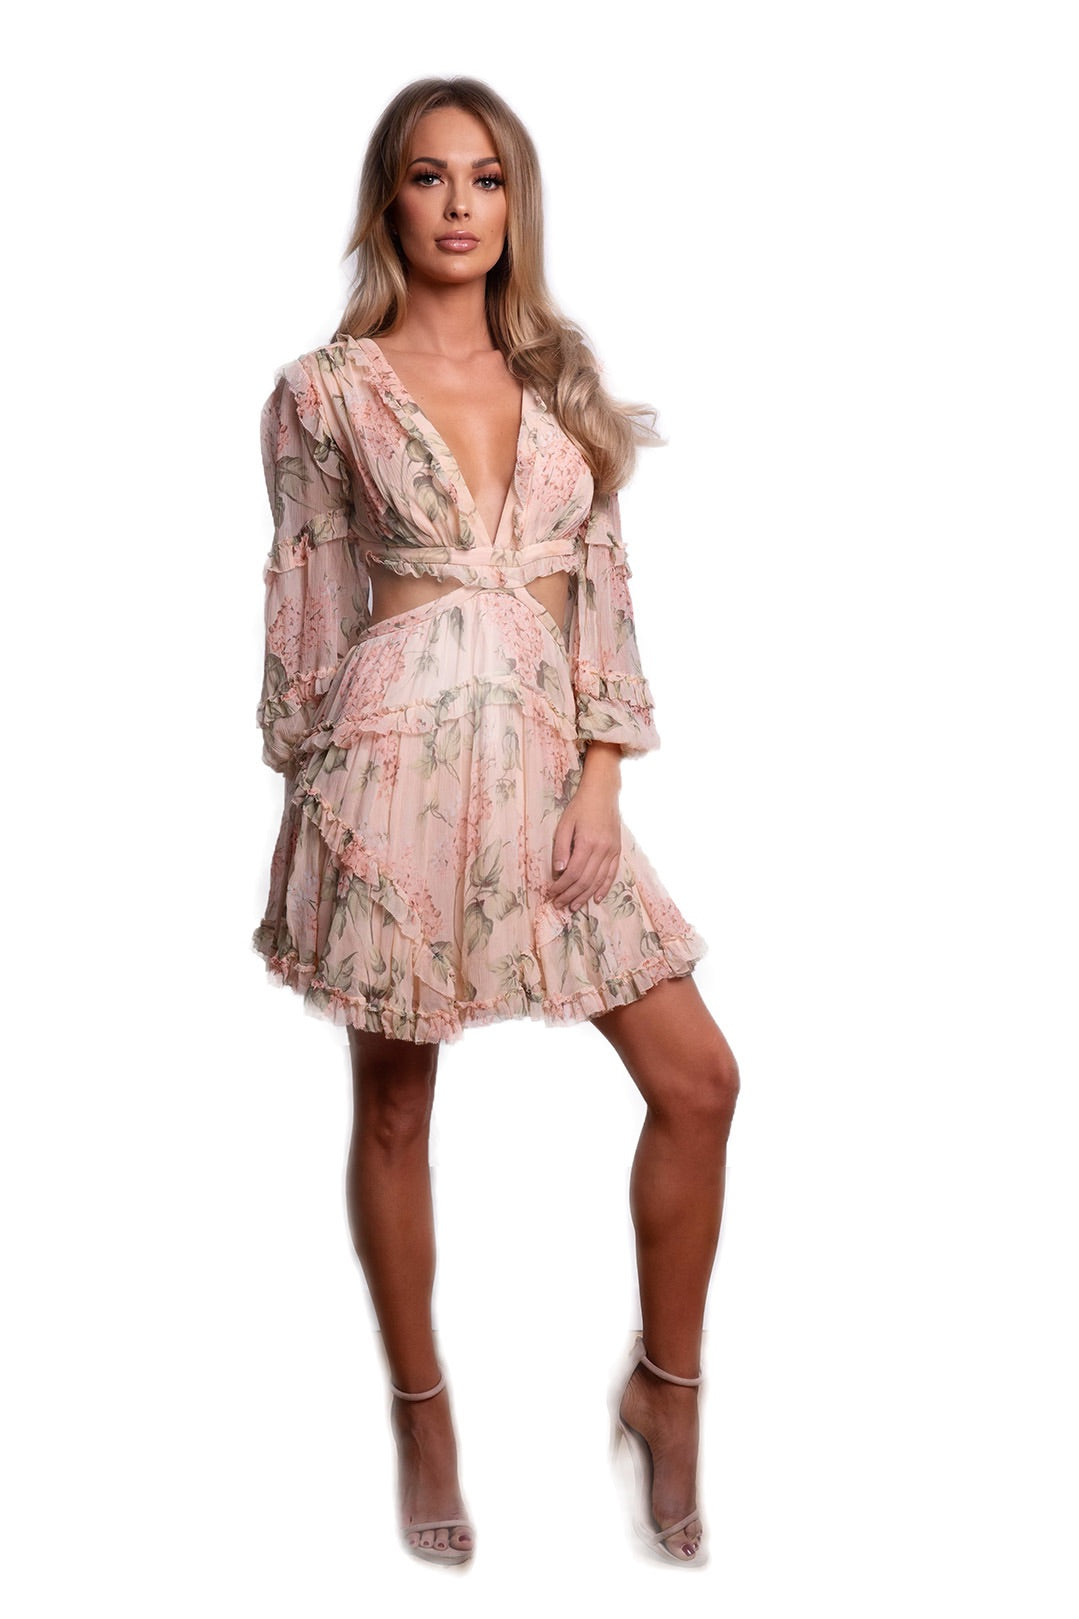 7bb78a55cf85f Prima Floating Cut Out Dress by Zimmermann | Sydney Dress Hire